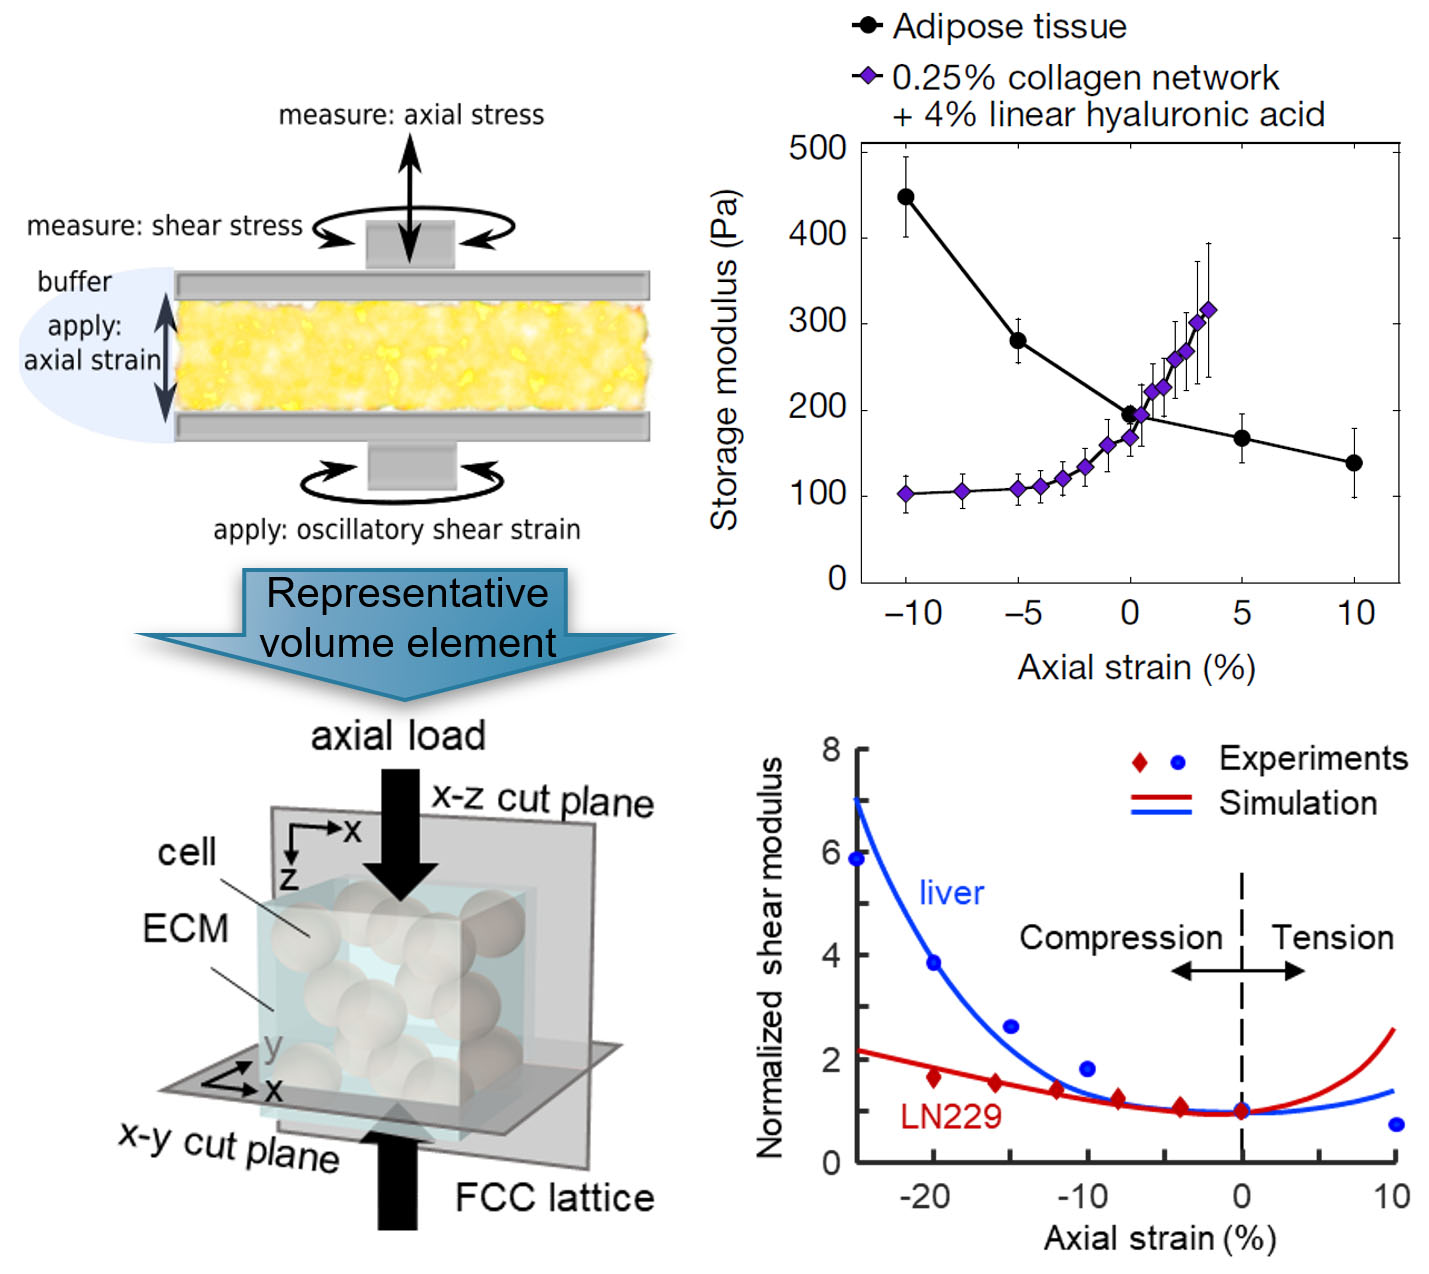 Figure top left: multiaxial response of soft tissues, figure bottom left: predicted response of the network model from the Shenoy group, figure top right: Polymer networks that soften in compression but stiffen in extension can be converted to materials that stiffen in compression but not in extension by including within the network either cells or inert particles to restrict the relaxation modes of the fibrous networks that surround them, figure bottom right: predicted response of the network model from the Shenoy group